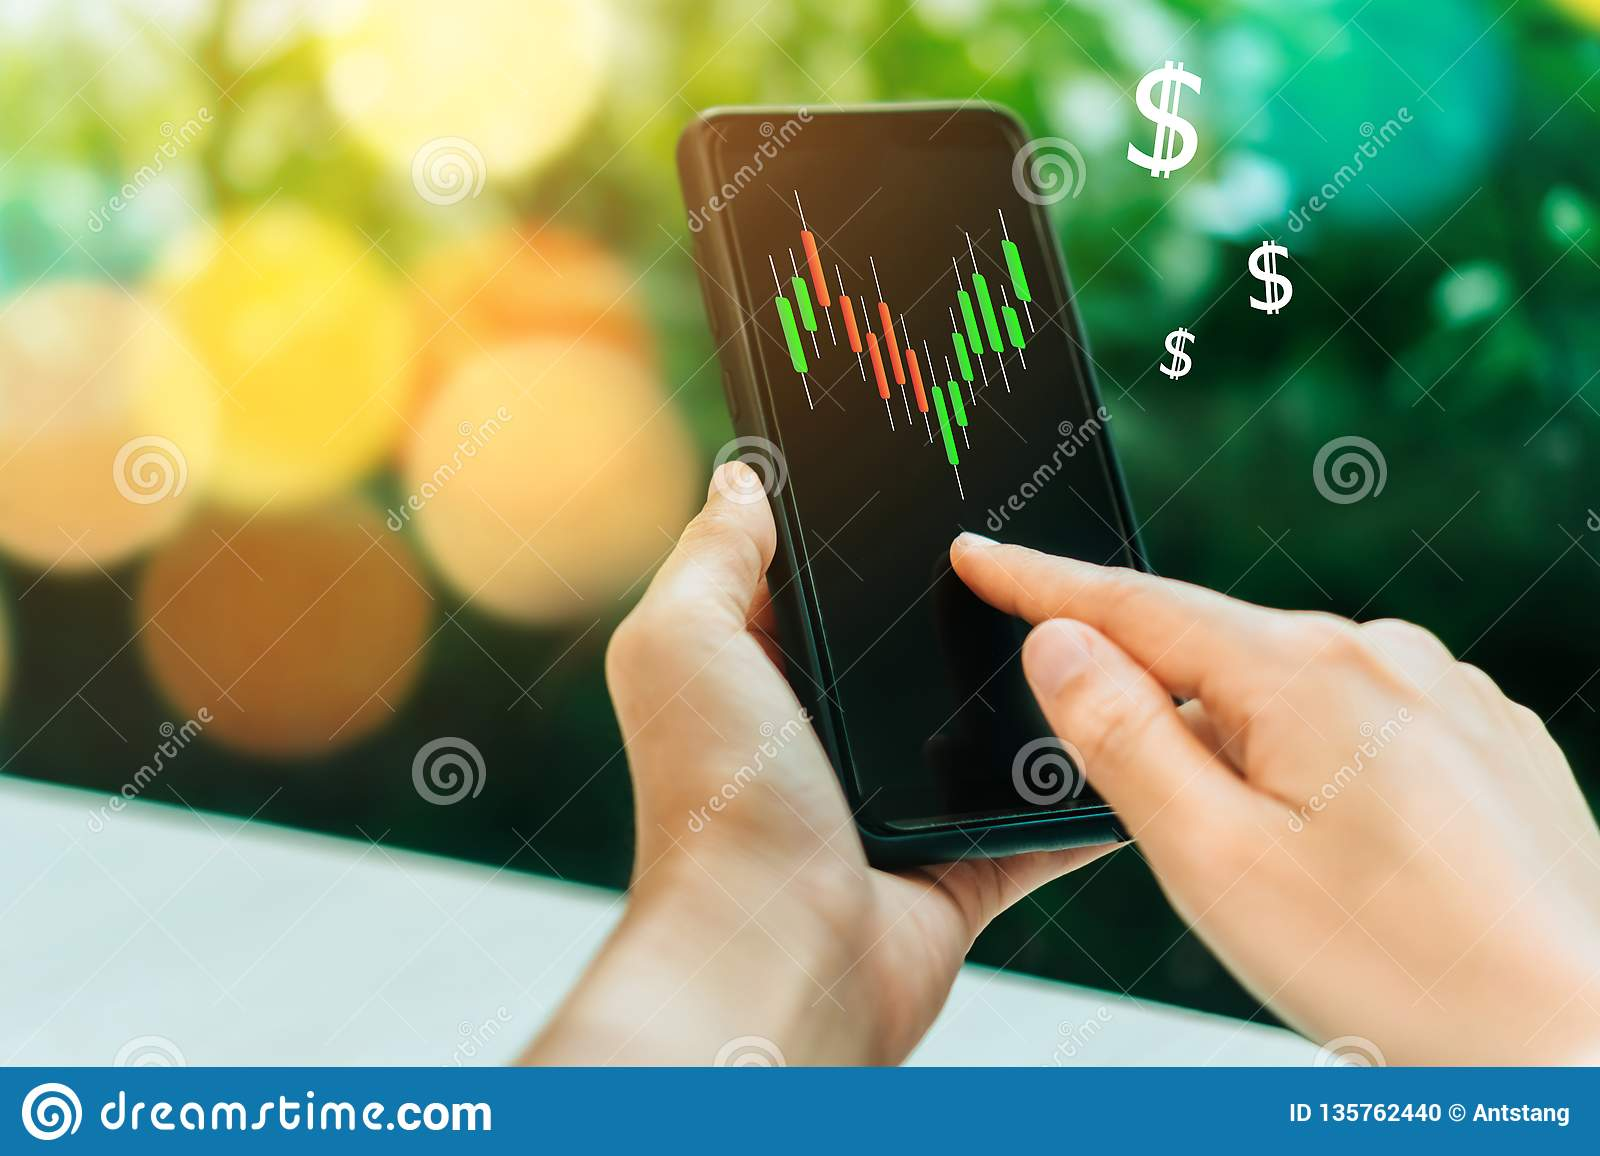 Market stock graph icon screen of smartphone background. Financial business technology freedom dream life using internet freedom